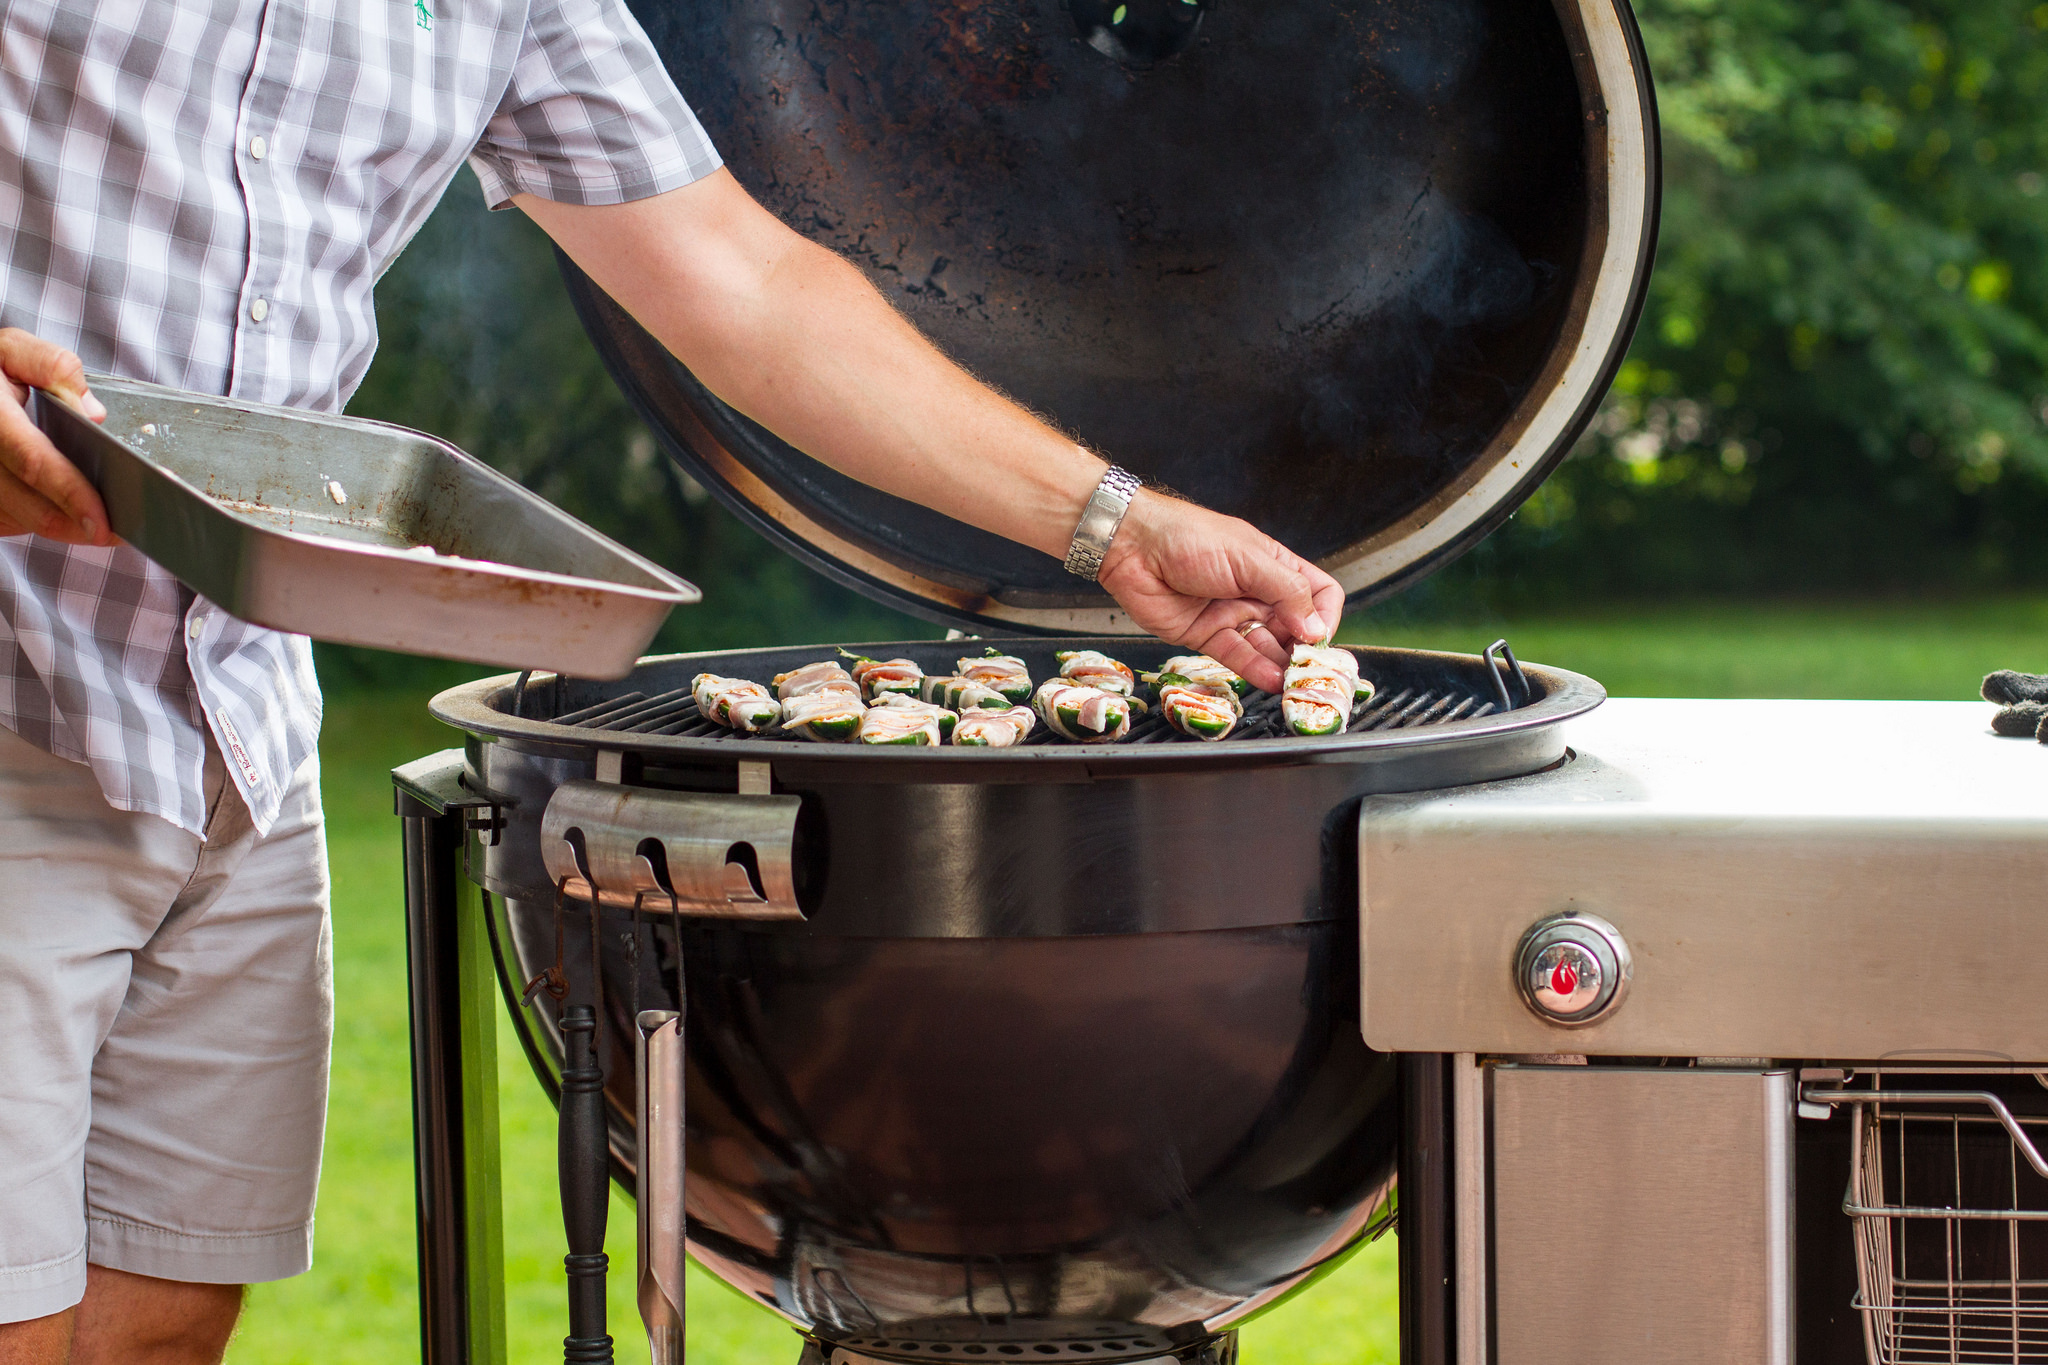 placing poppers on weber summit charcoal grill.jpghttps://www.flickr.com/photos/anotherpintplease/28540243511